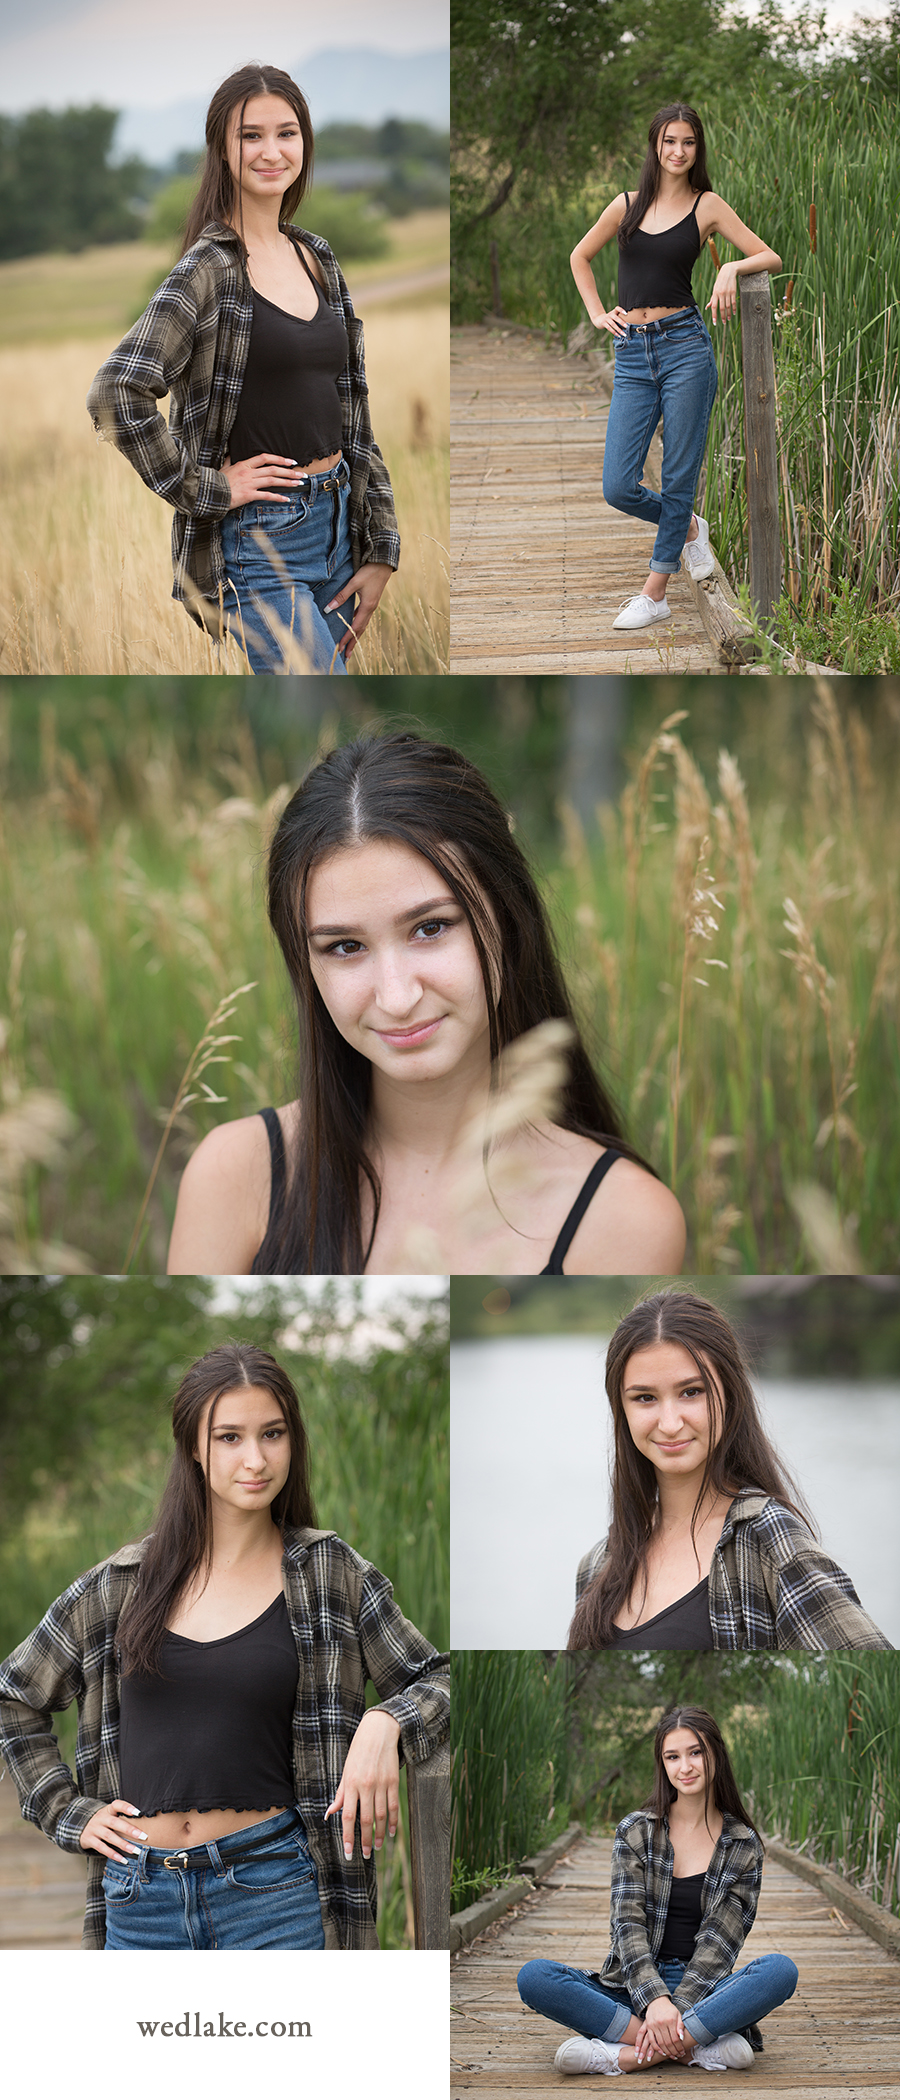 Denver Senior Pictures